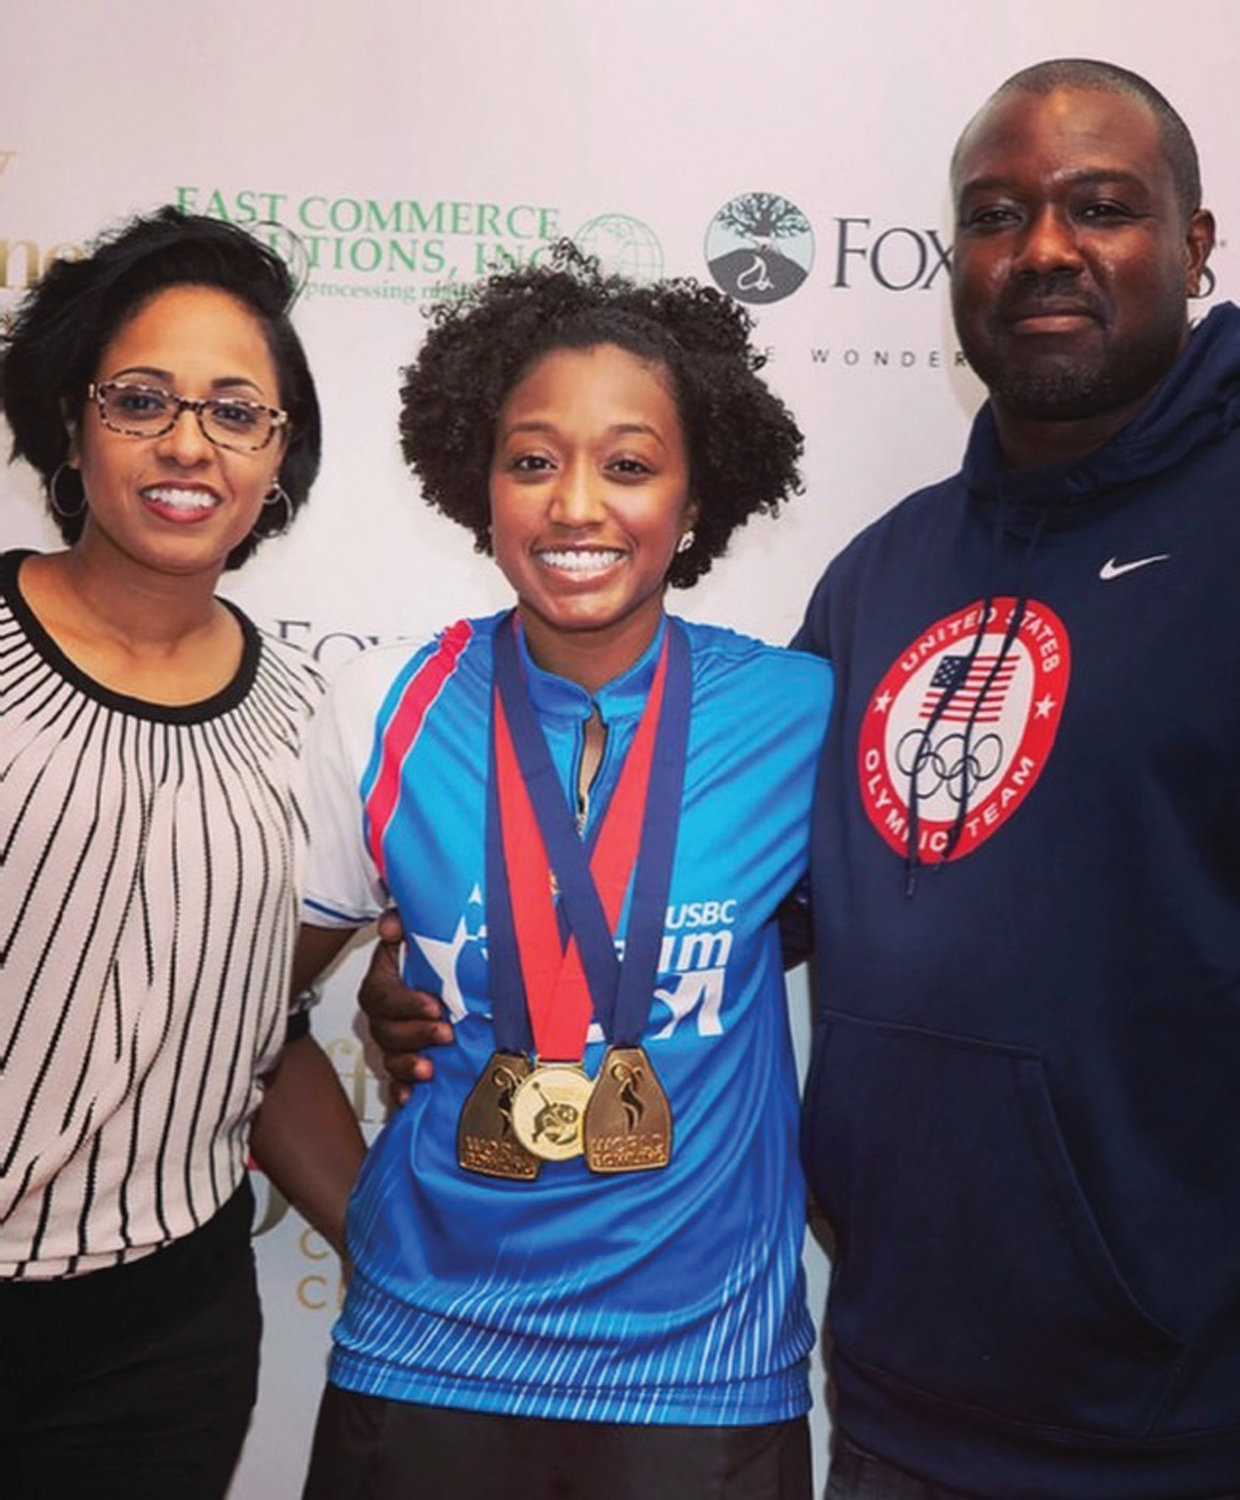 GOING FOR GOLD: Gazmine Mason shows off her gold medals while sharing a moment with her mother, Danielle Daley-Mason, and father, George Mason.